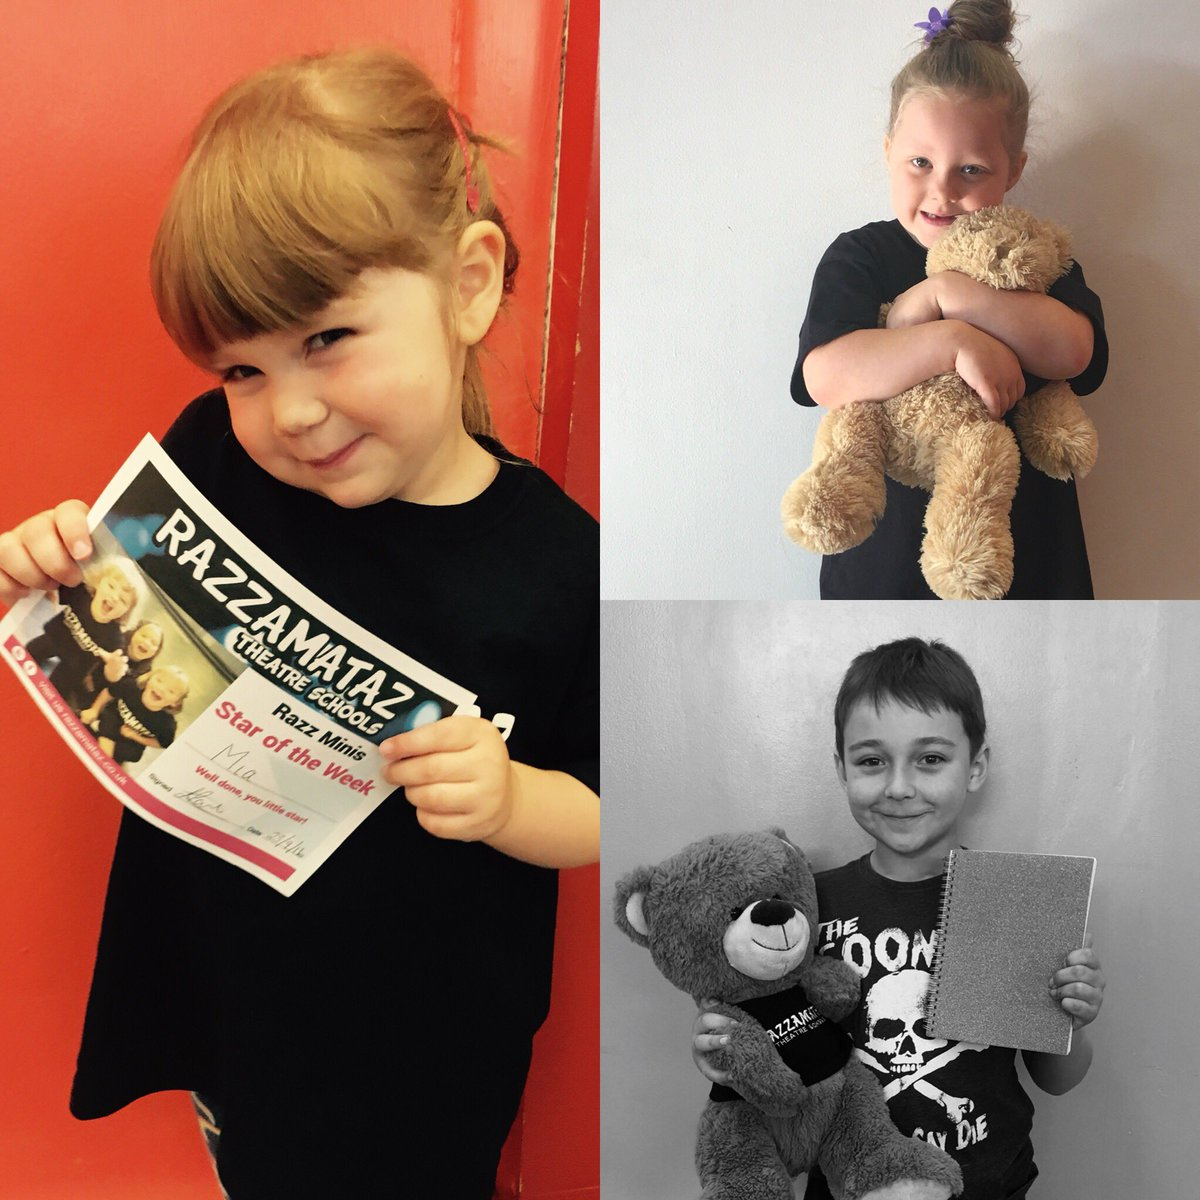 #ThrowbackThursday to some of our very first #WednesdayWinners Away back in 2016!  We love being part of your journey and having you guys in our Razz family! #believeinyou #lifeskills   http://Www. newcastle.razzamataz.co.uk  &nbsp;  <br>http://pic.twitter.com/Xapp0bAVQb